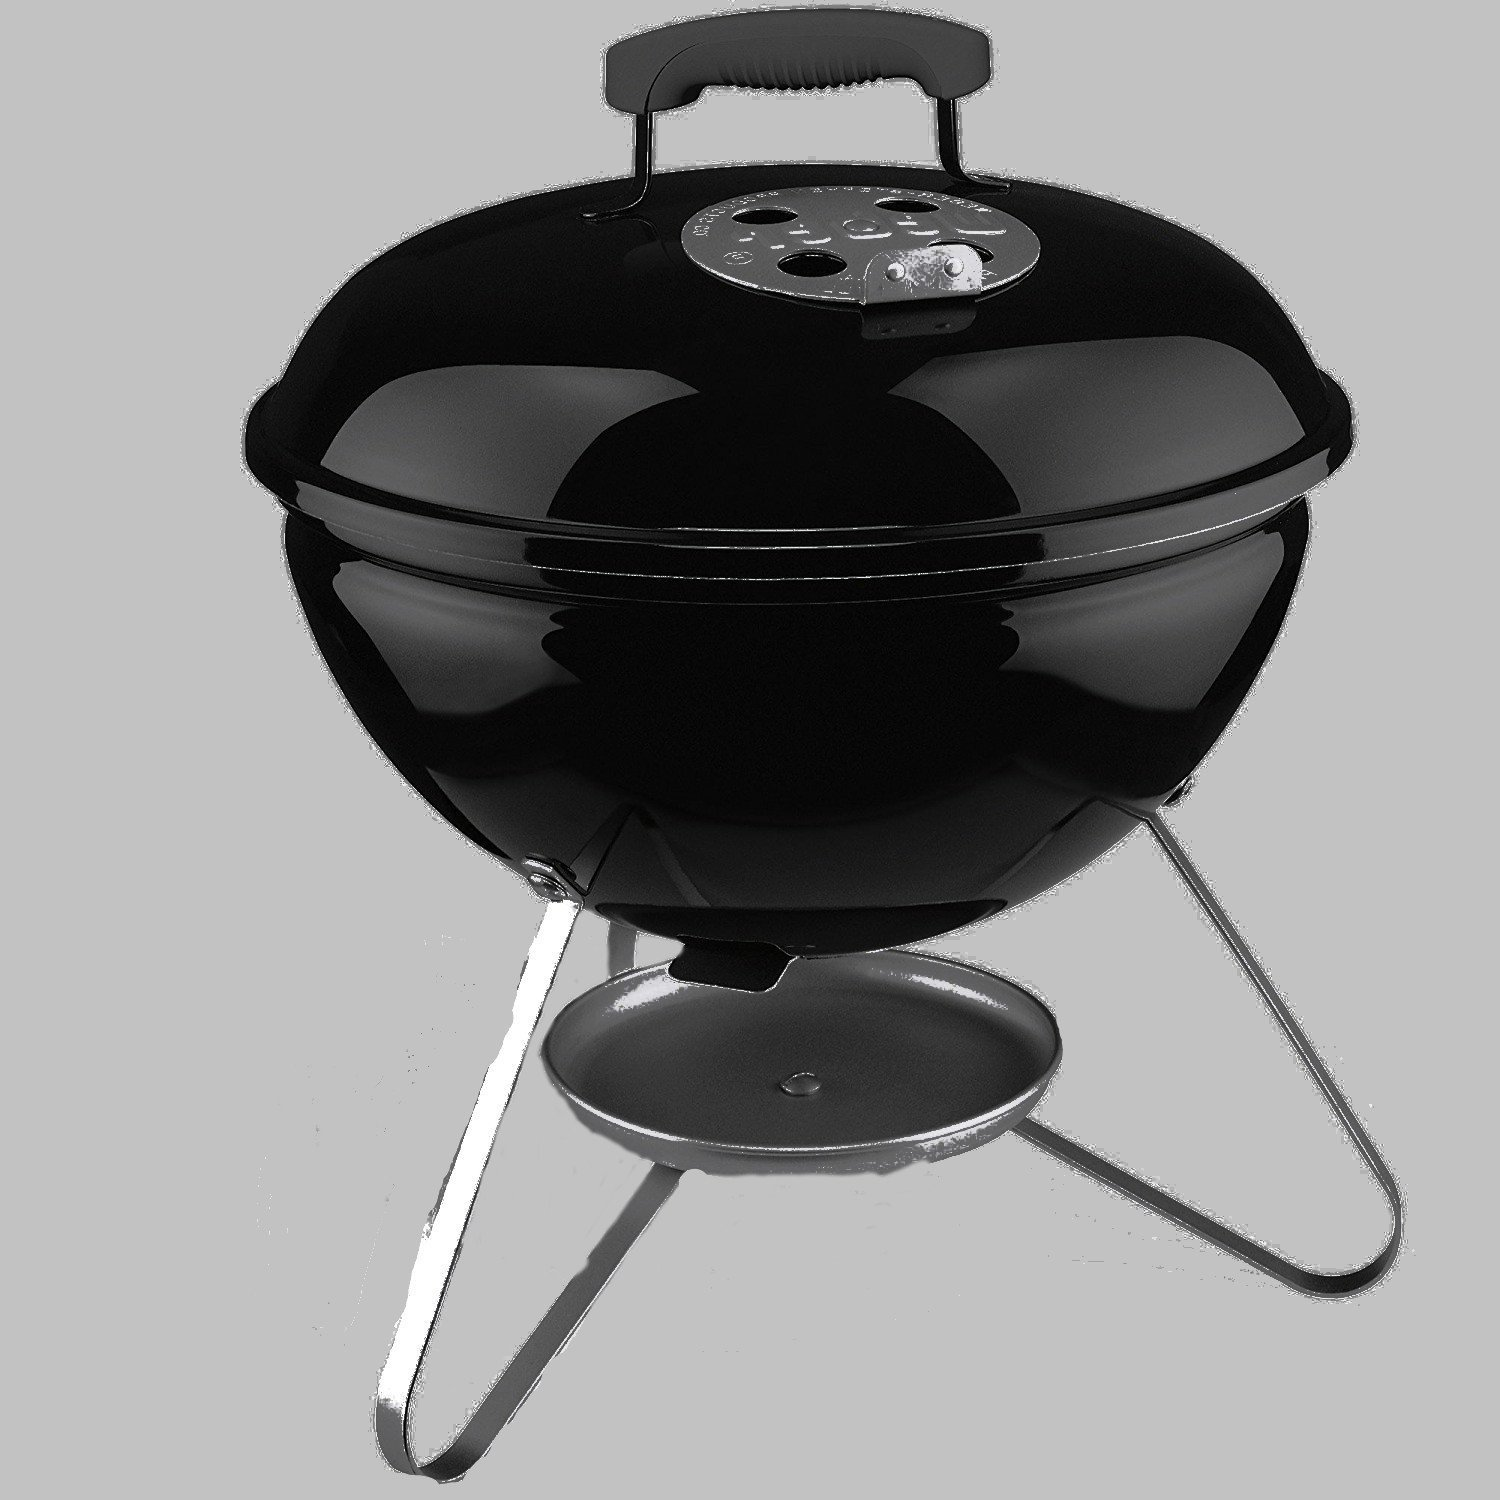 Coal Grill Indoor, Steel Material, Three Legs,Durable And Highly Resistant Construction, Extra Storage, Innovative And Modern Design, Portable, Lightweight, Steady, Black Color, Easy Setup & E-Book.